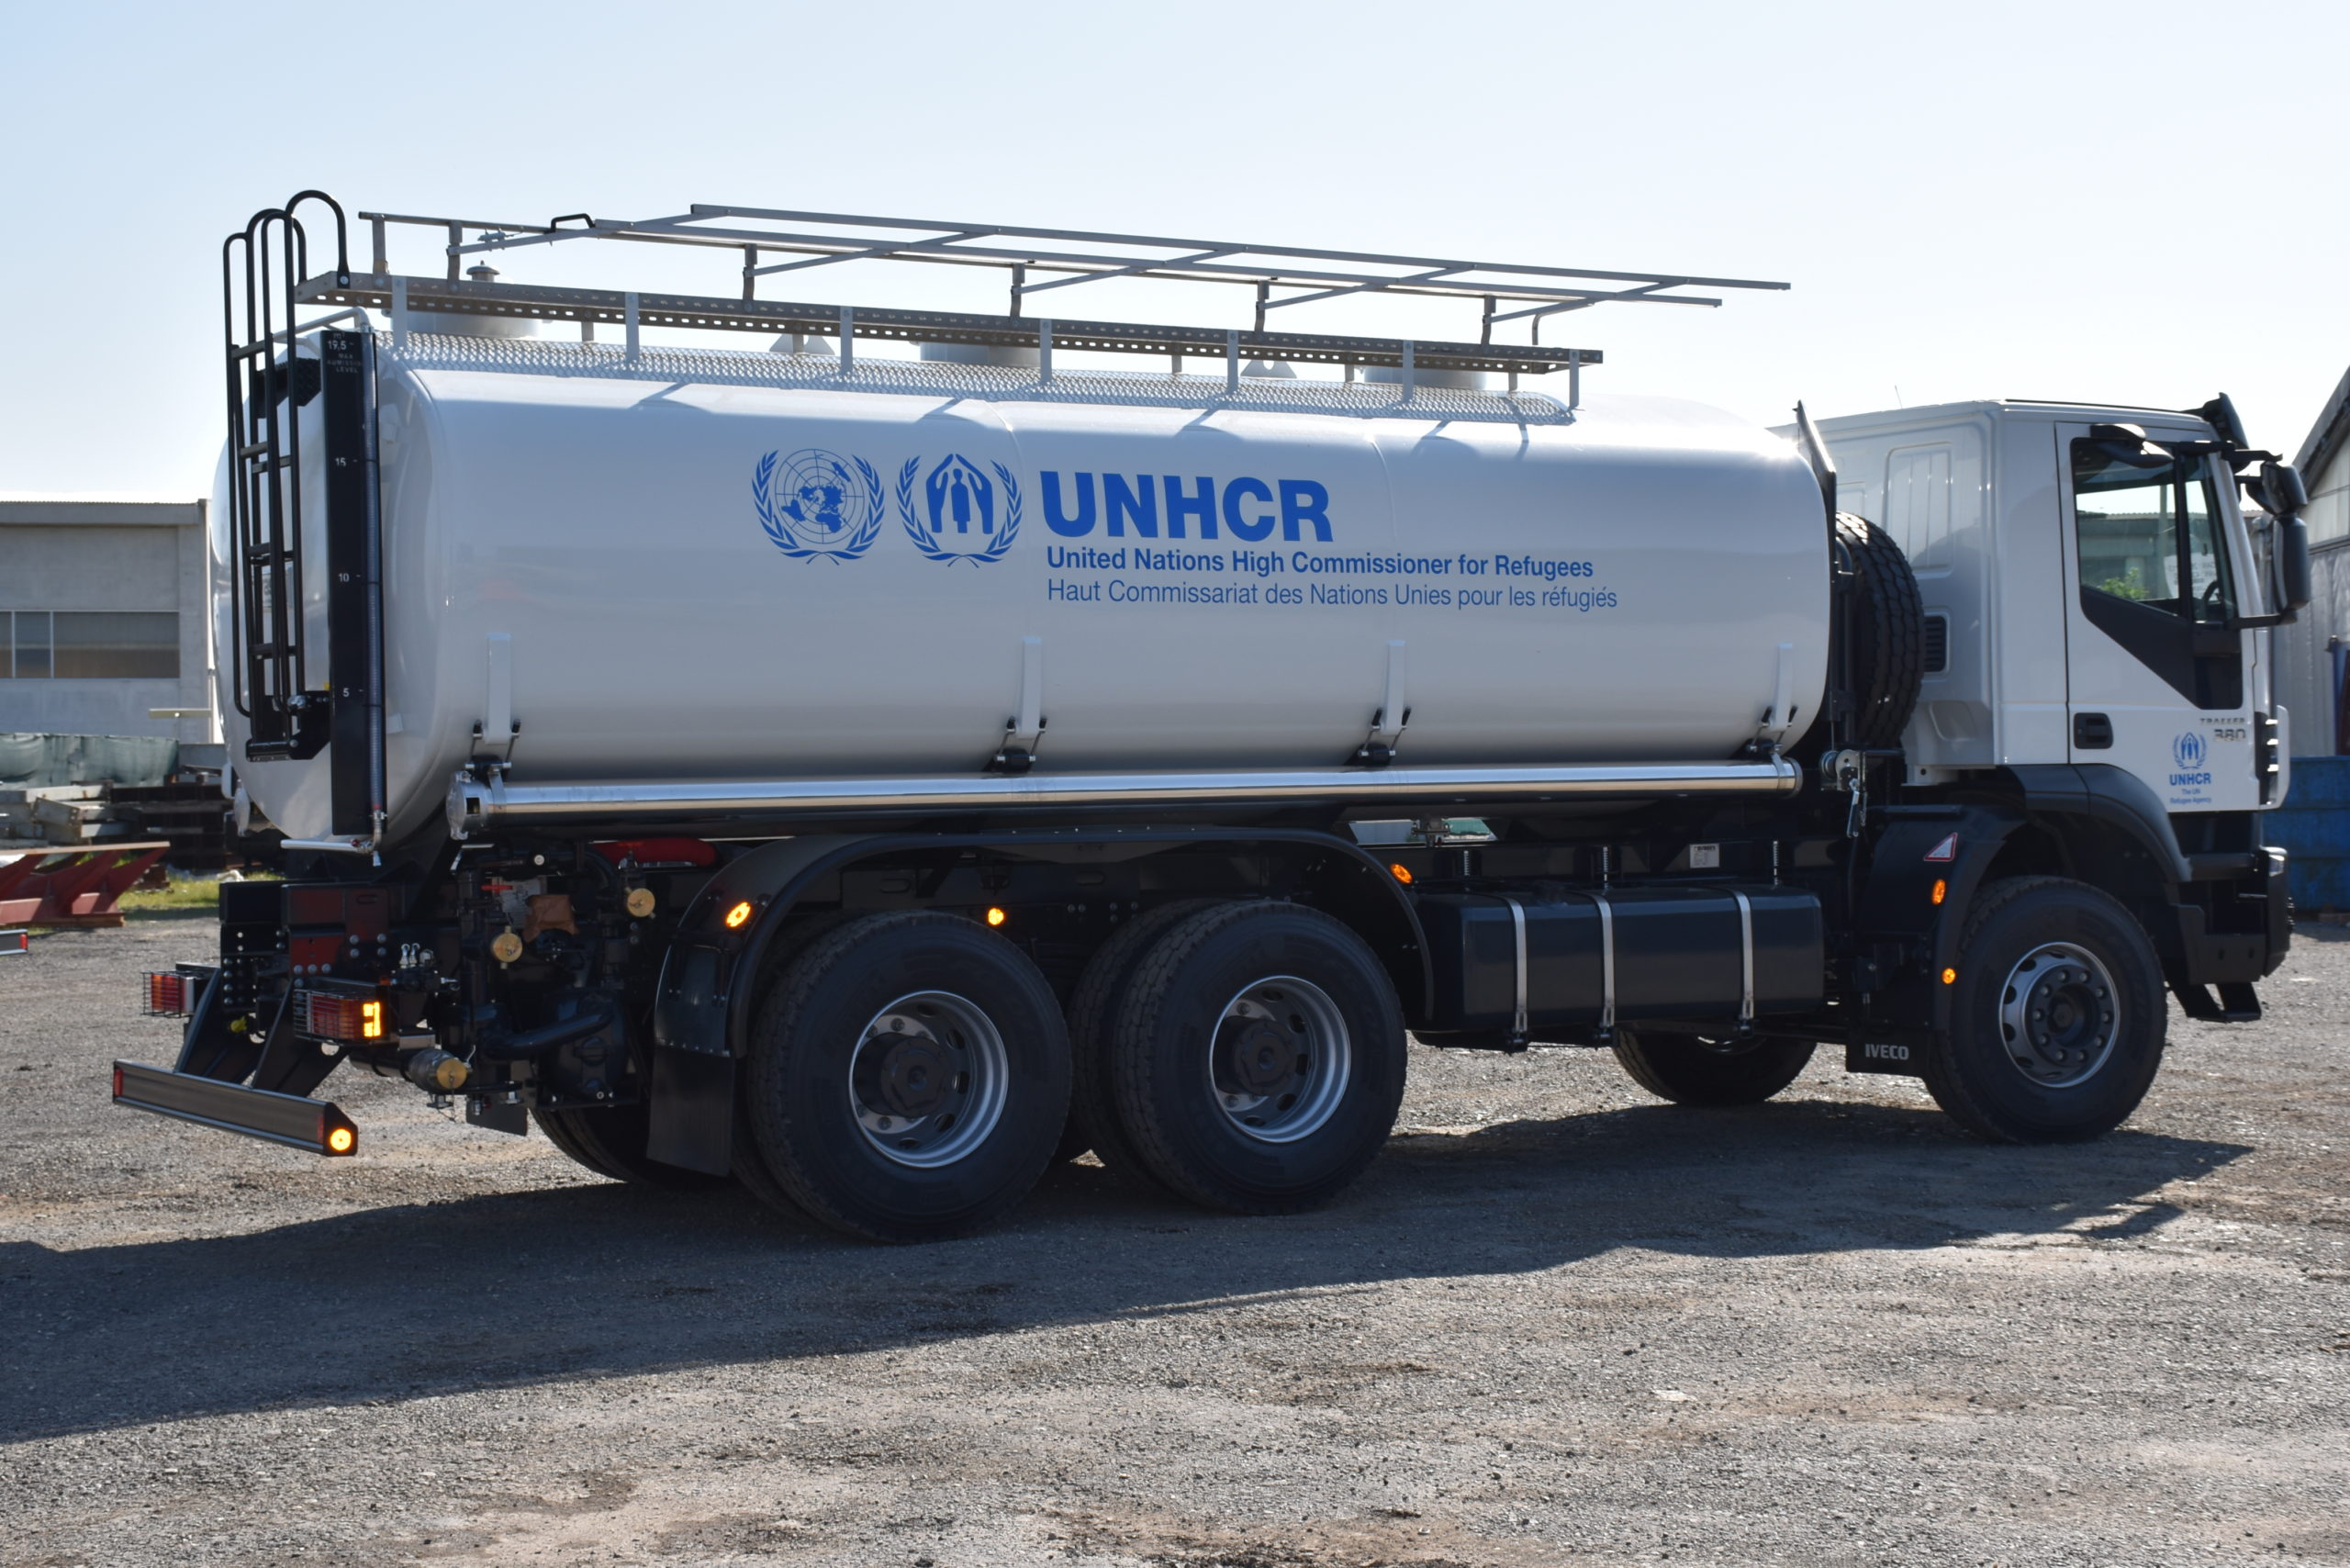 Water_tanker_for_UNHCR_truck_